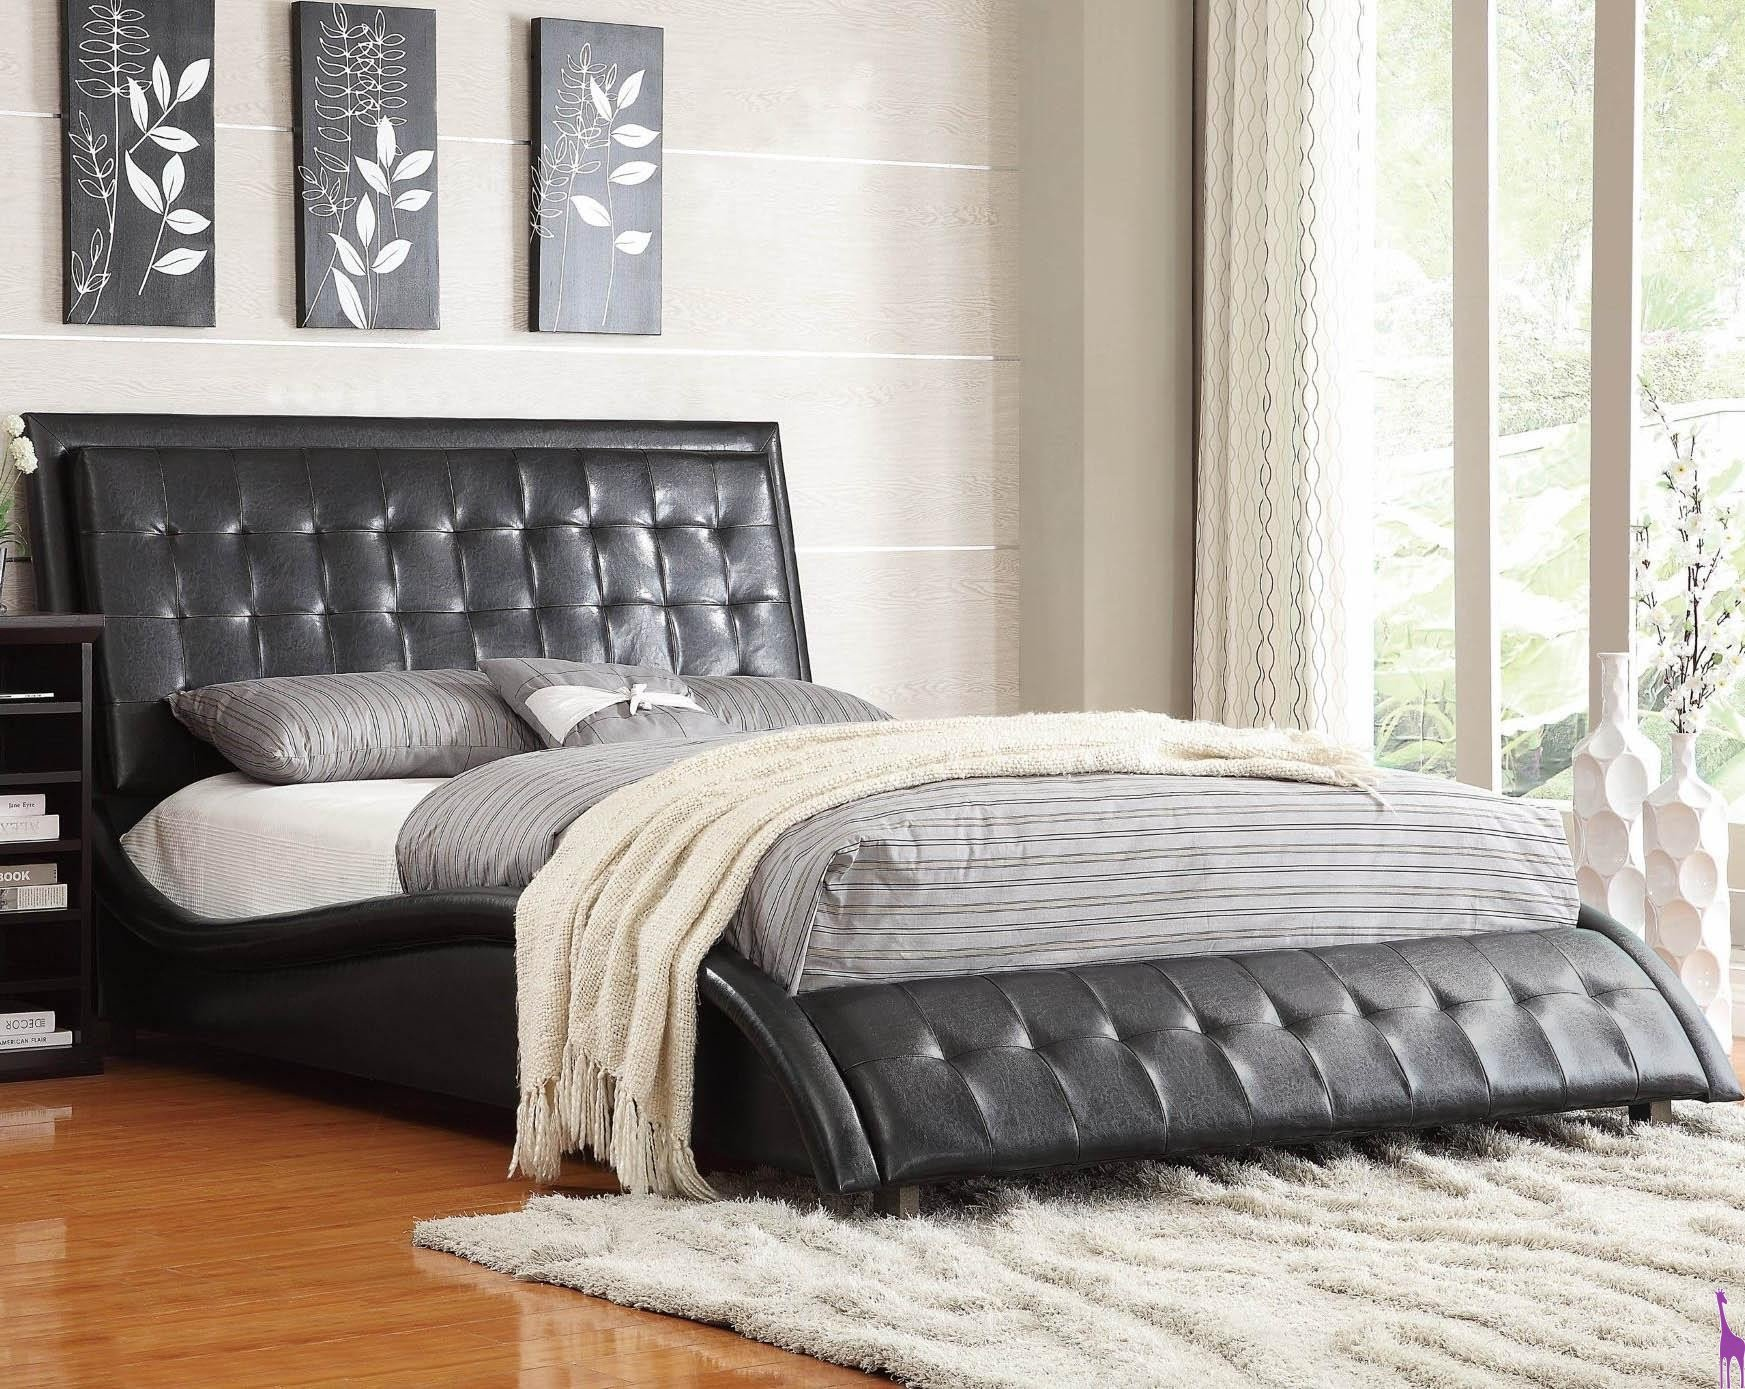 Tufted Queen Bedroom Set Best Of Tully Black Upholstered Bed